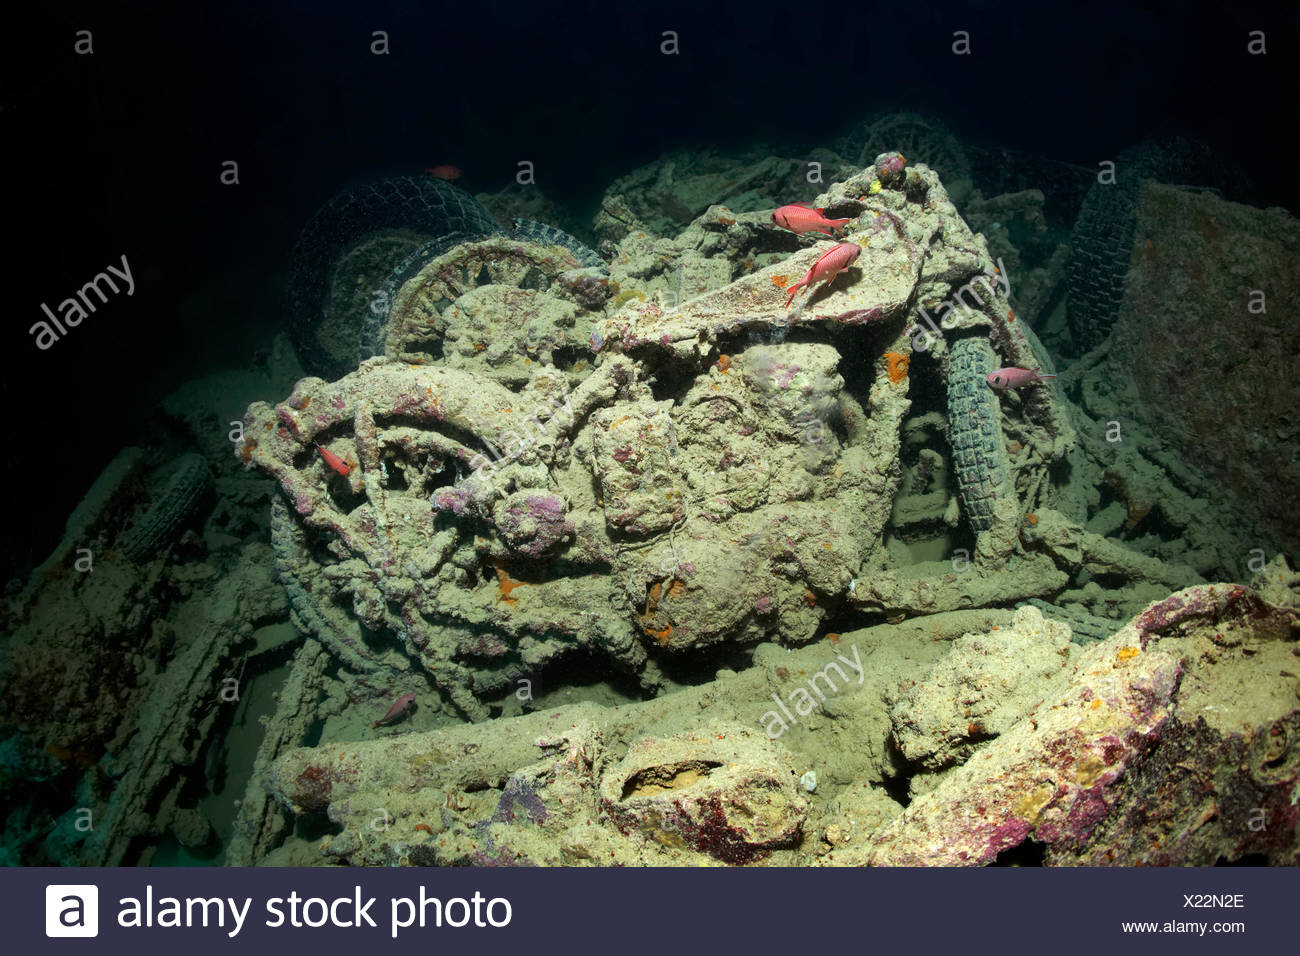 British Small Arms BSA M-20 motorcycle, cargo on the shipwreck of the SS Thistlegorm, Red Sea, Shaab Ali, Sinai Peninsula, Egypt - Stock Image